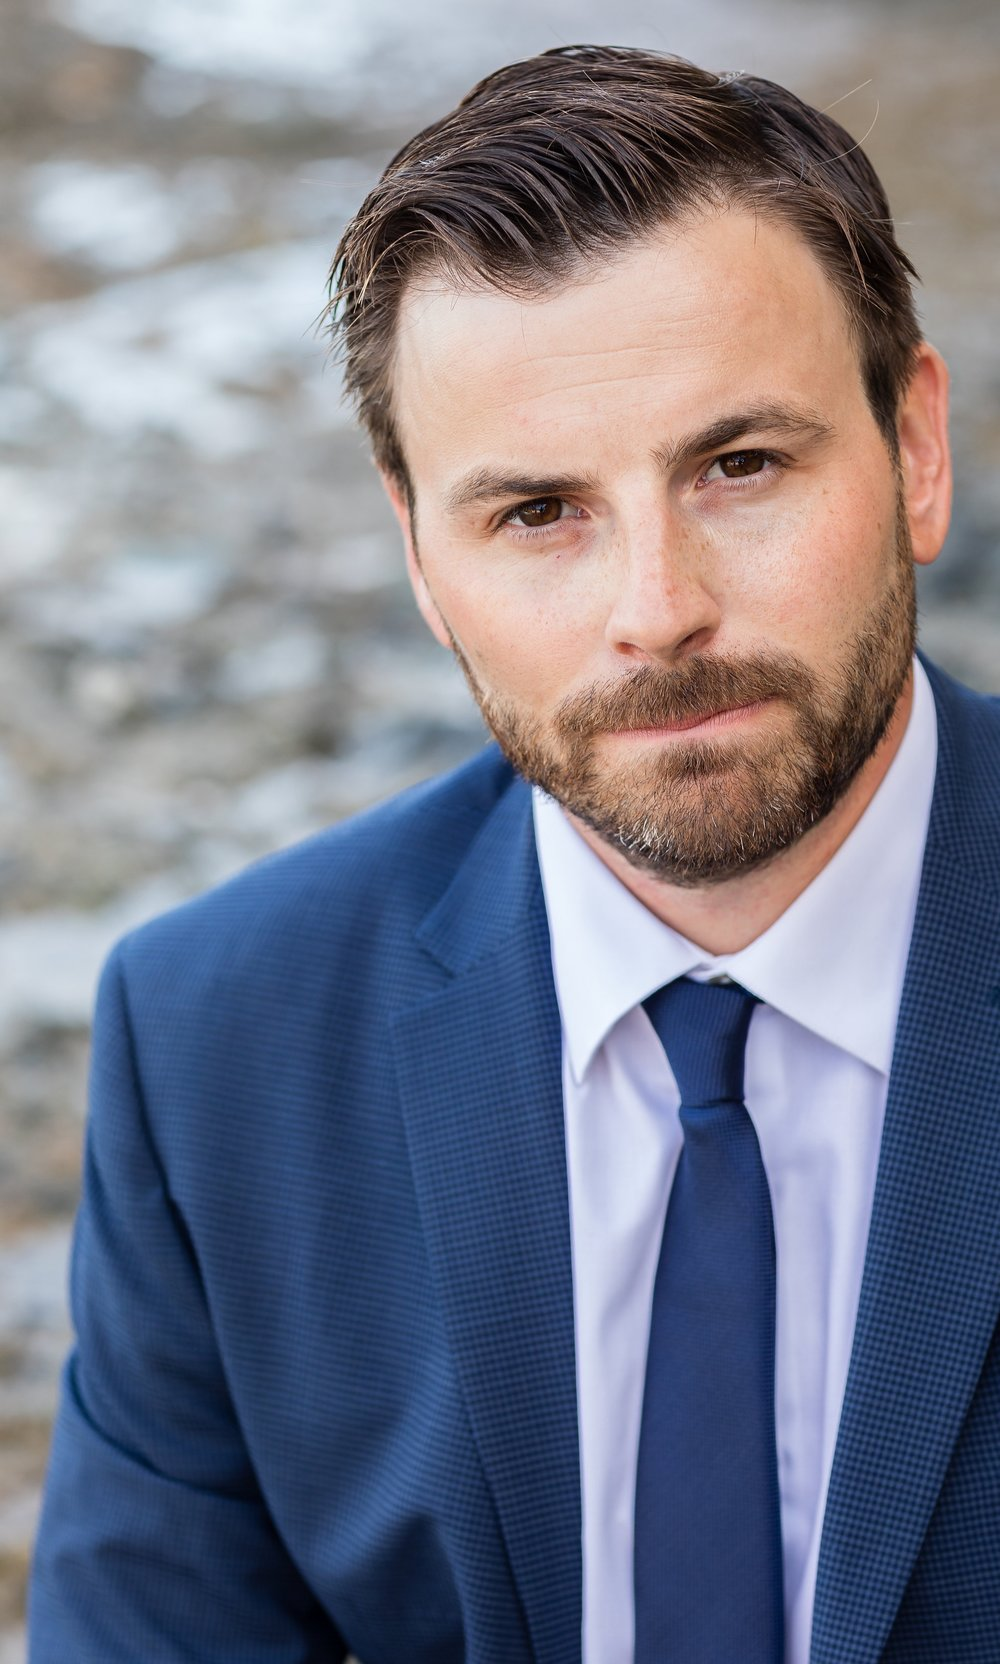 Photo of Handsome Wedding Groom in blue suit with facial hair on the rocky Laguna Beach shores.jpg